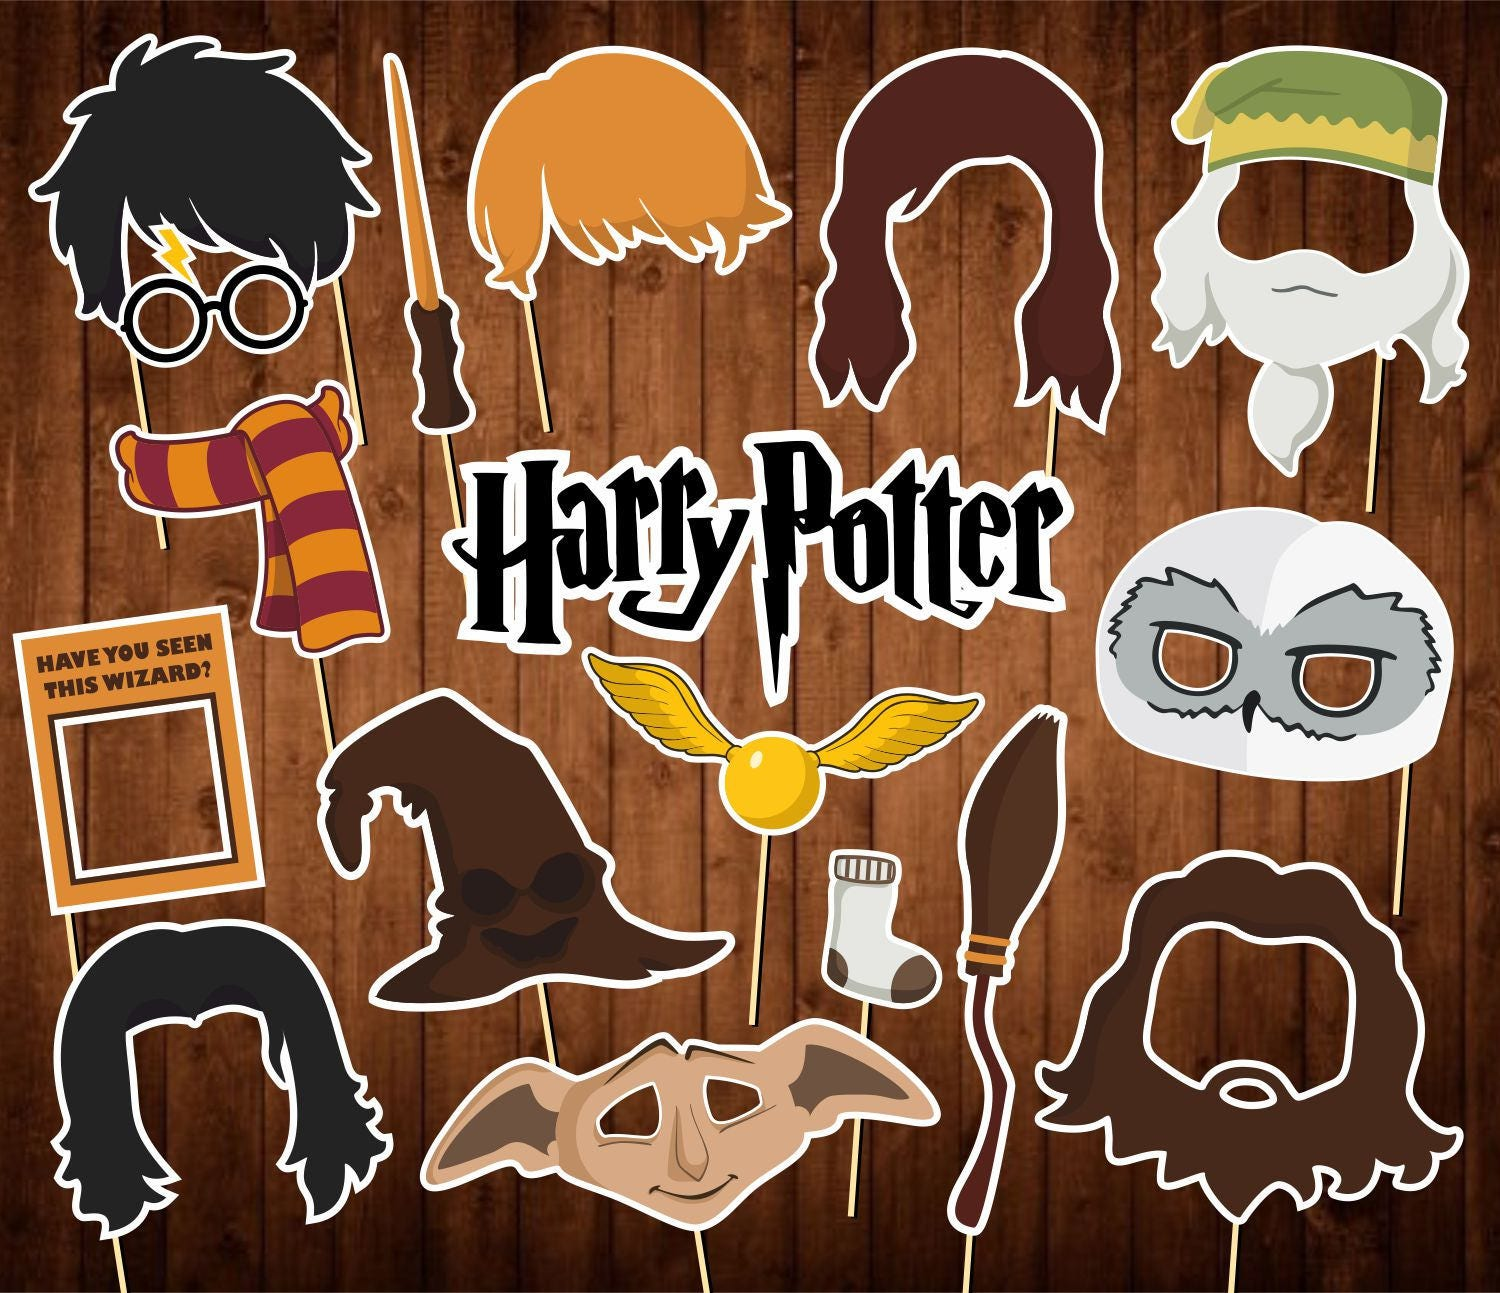 Harry Potter Photo Booth Props Wizard Photo Booth Props